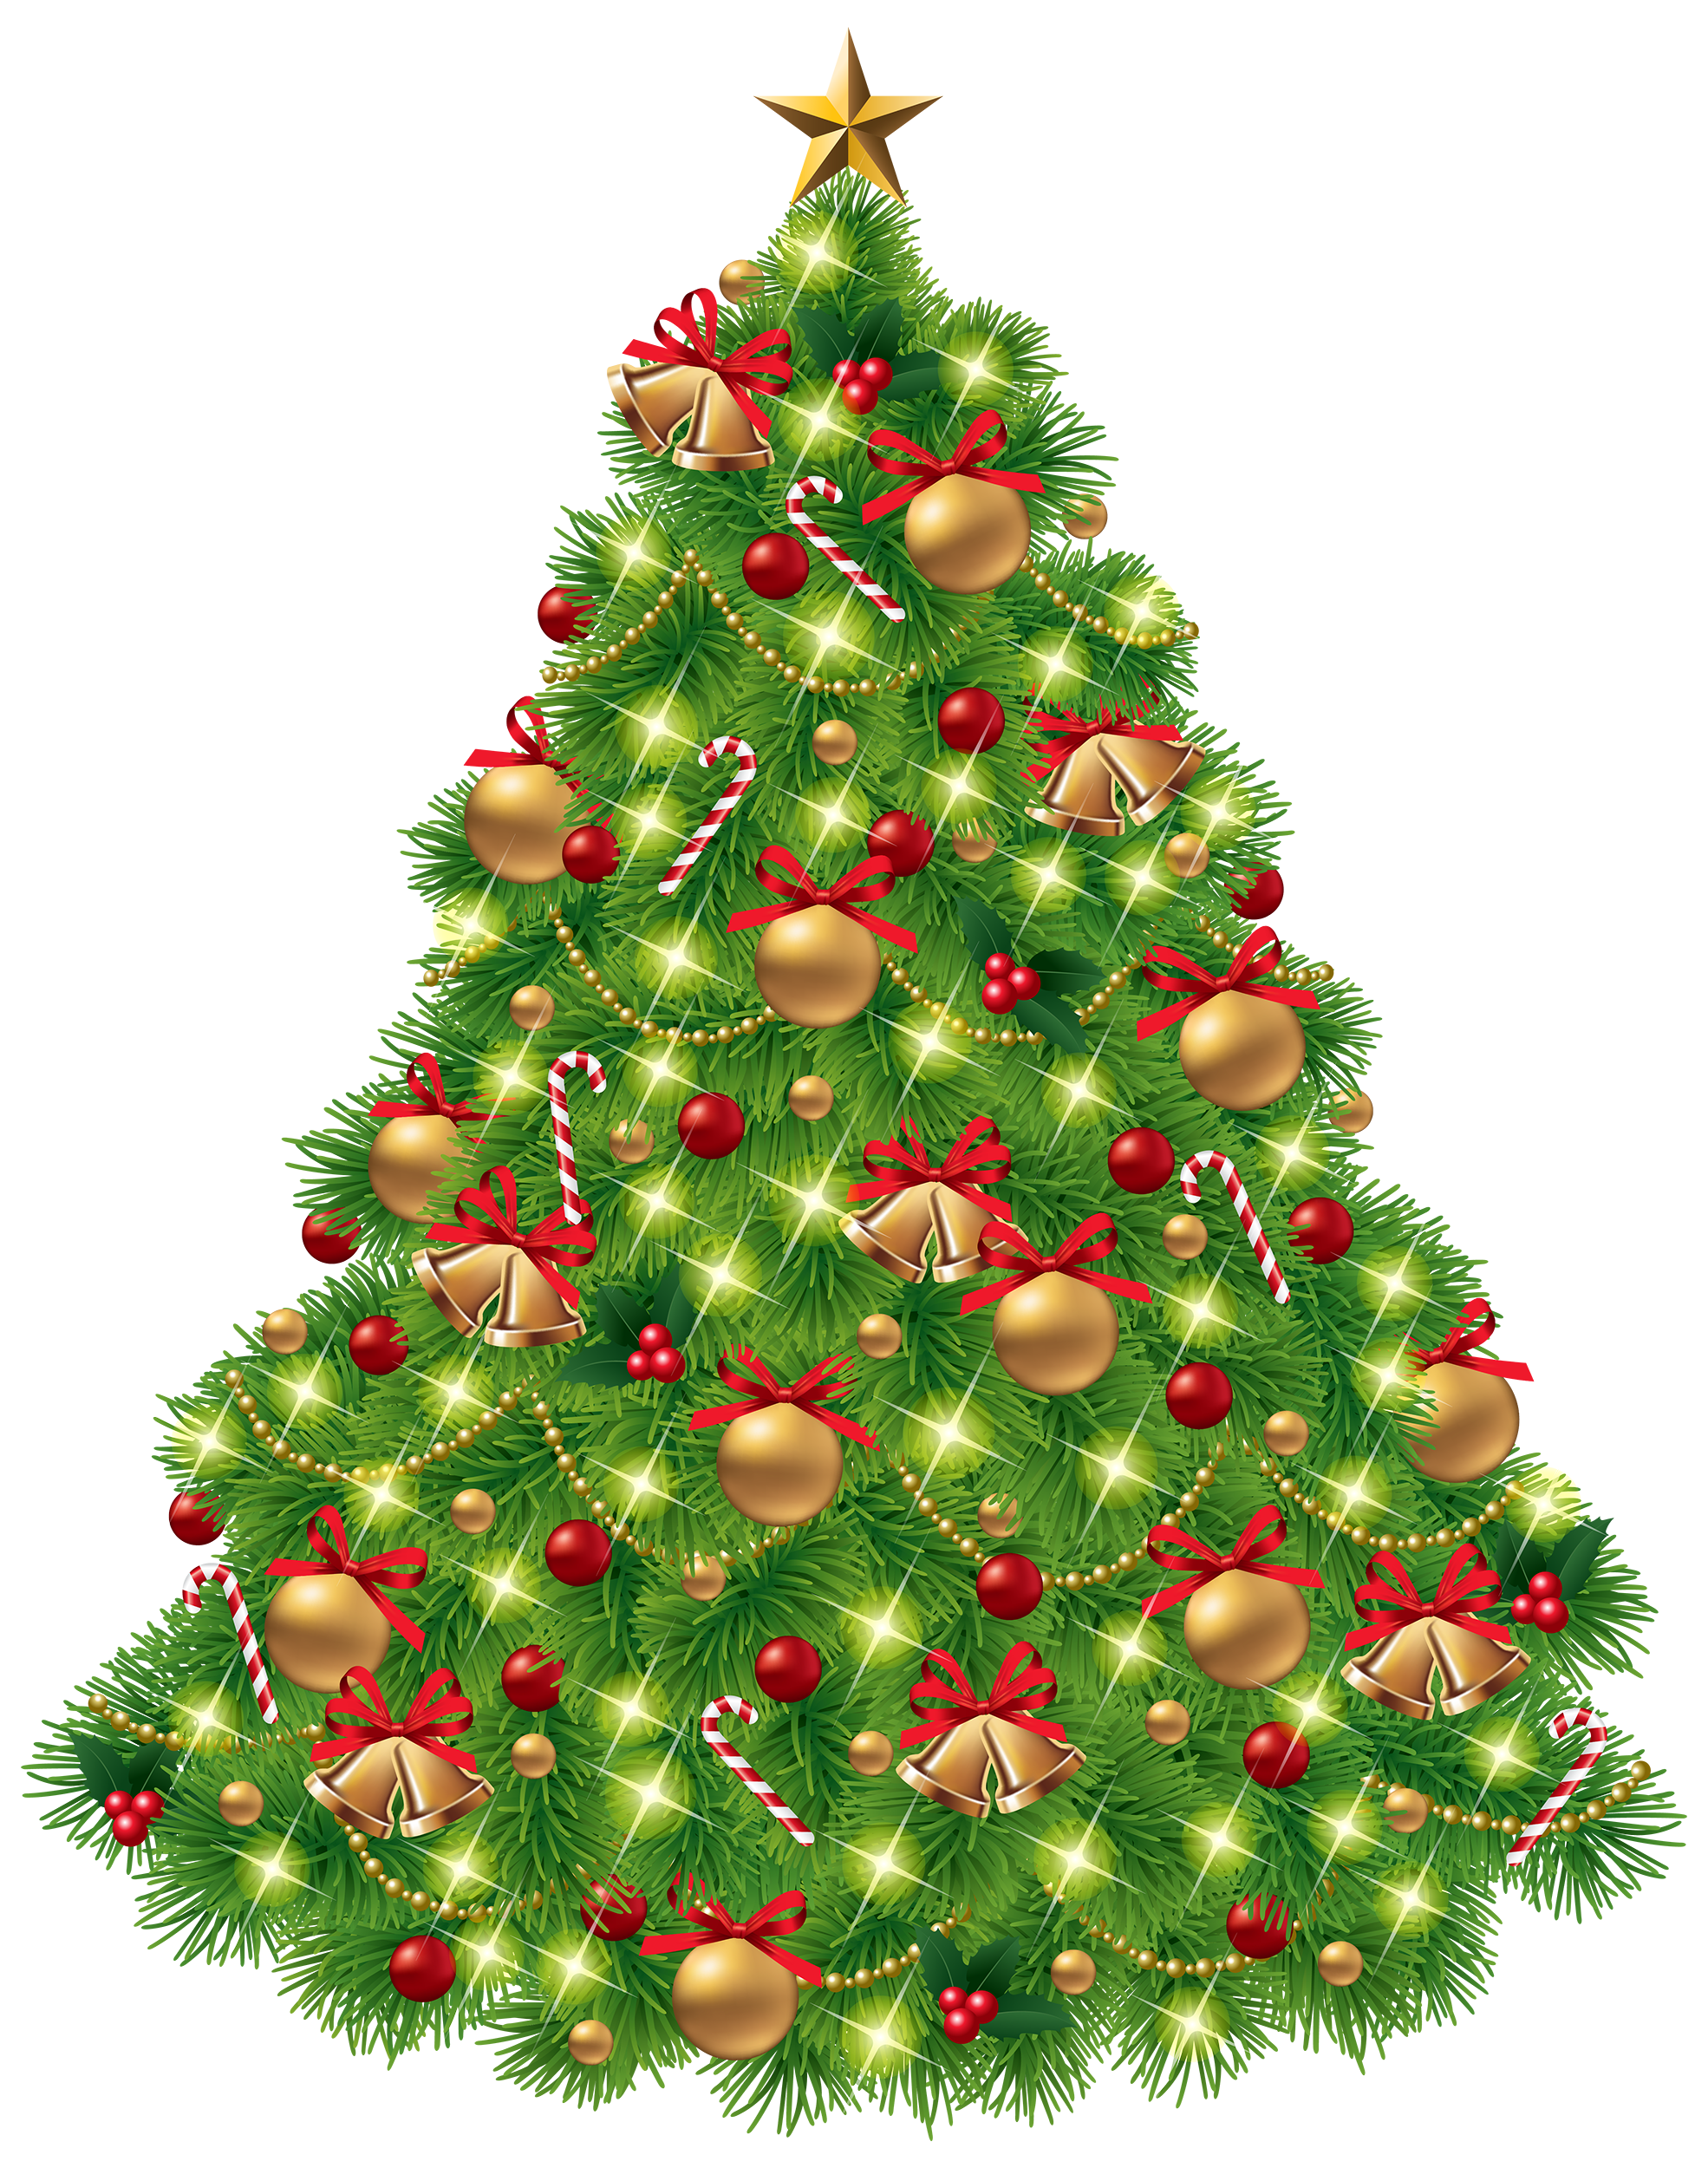 Christmas Tree Clipart with Decoration PNG Image